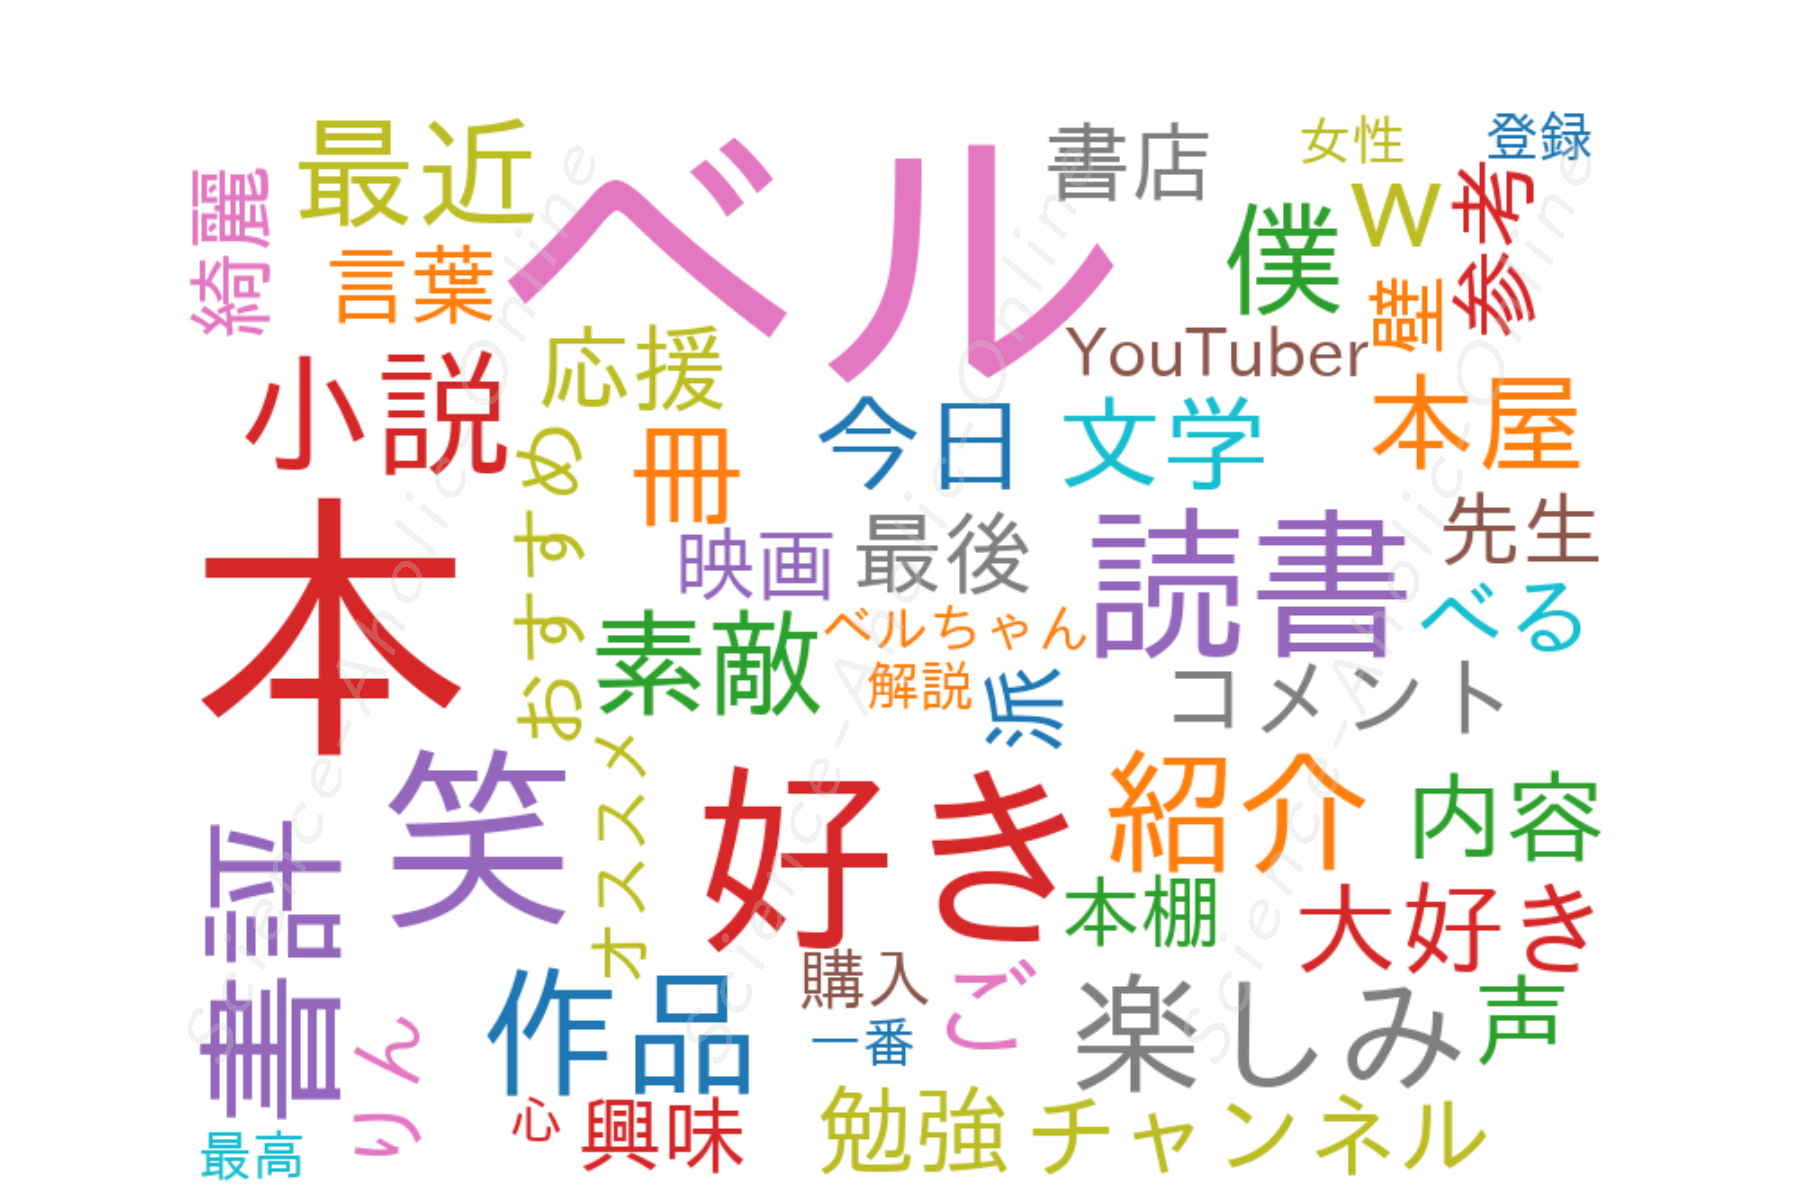 https://science-aholic-online.com/wp-content/uploads/2020/08/wordcloud_文学YouTuberベル.png